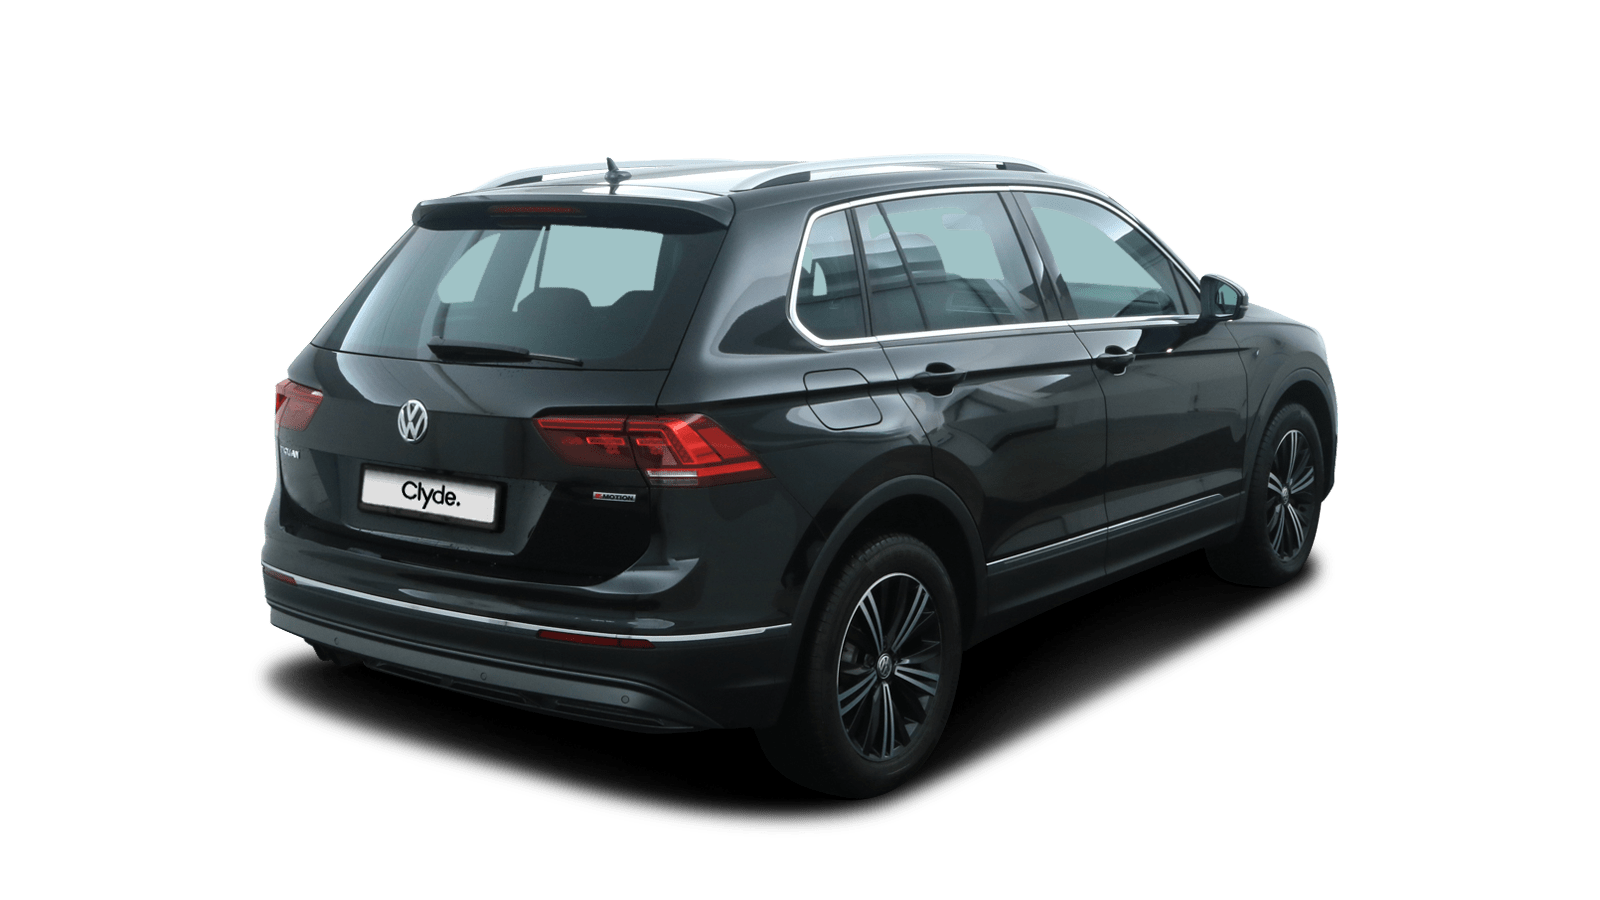 VW Tiguan Black back - Clyde car subscription